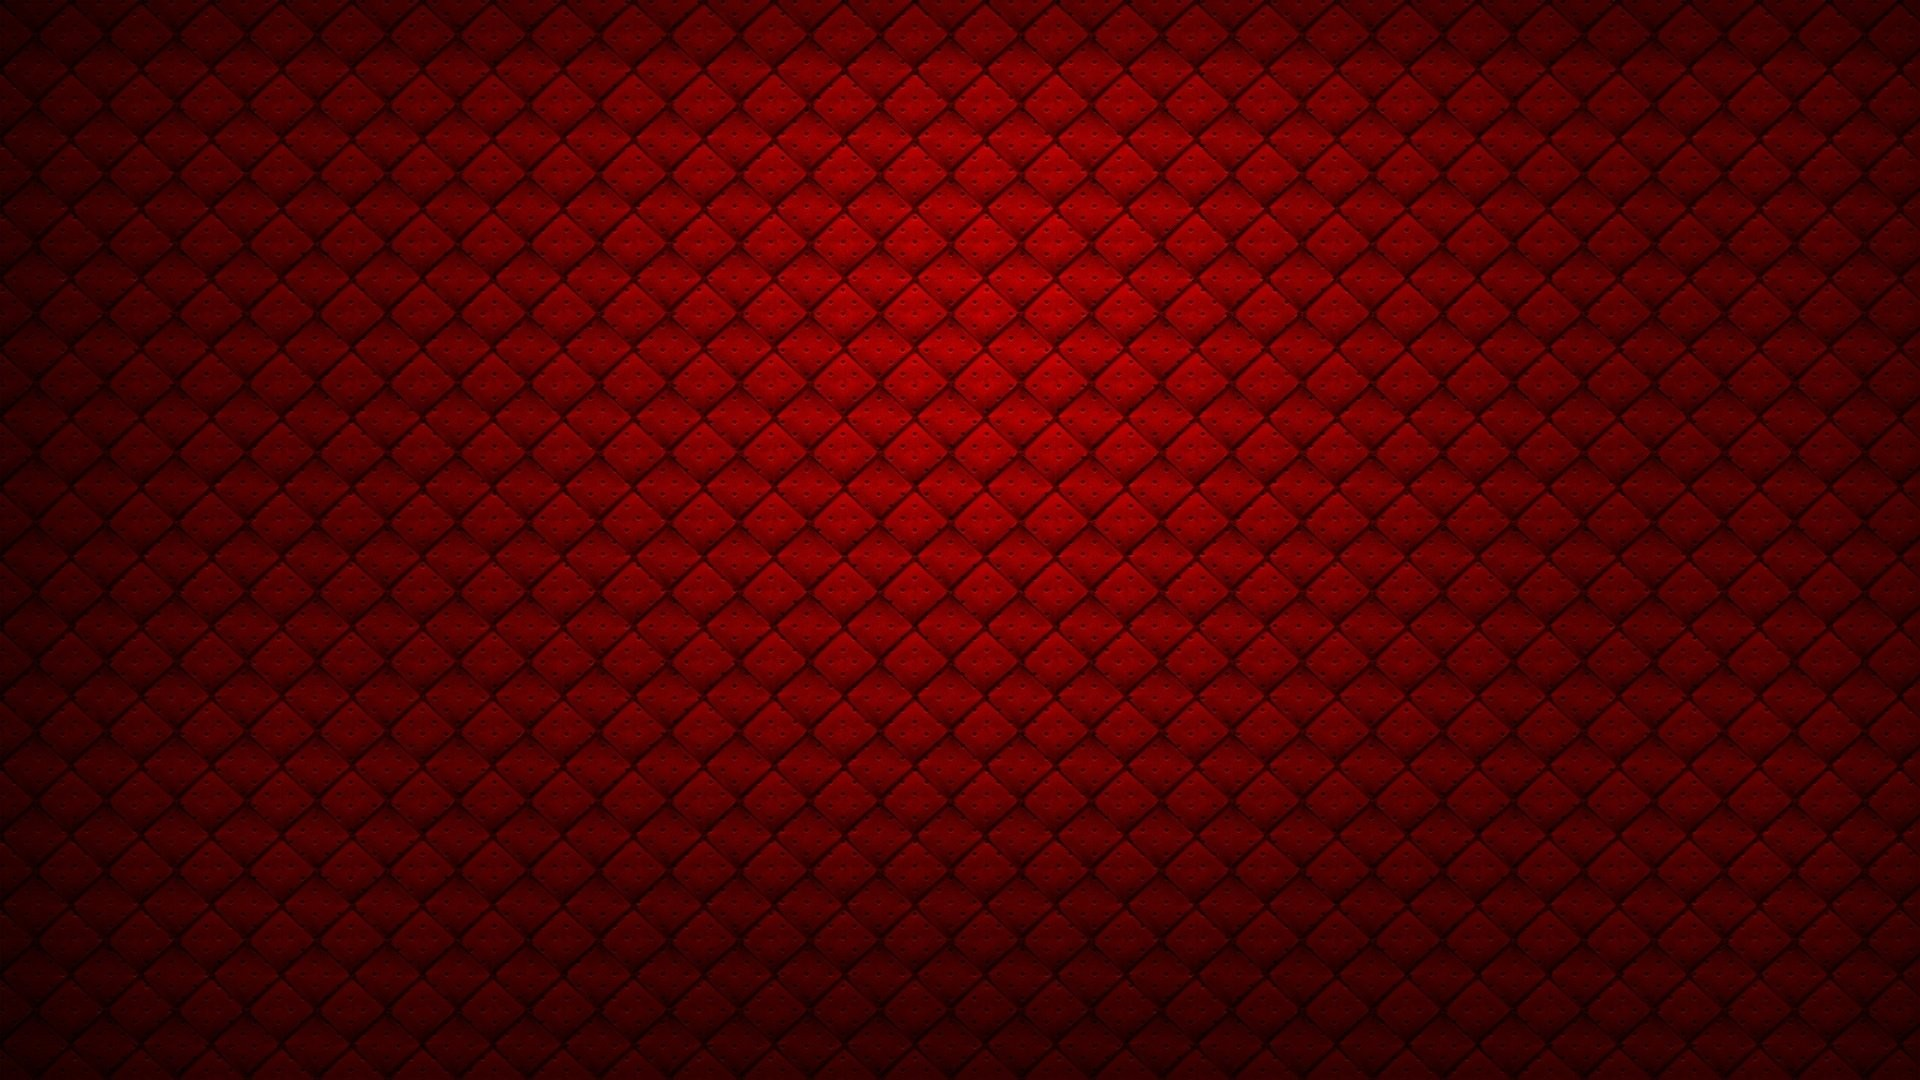 Maroon background download free awesome full hd - Maroon wallpaper ...